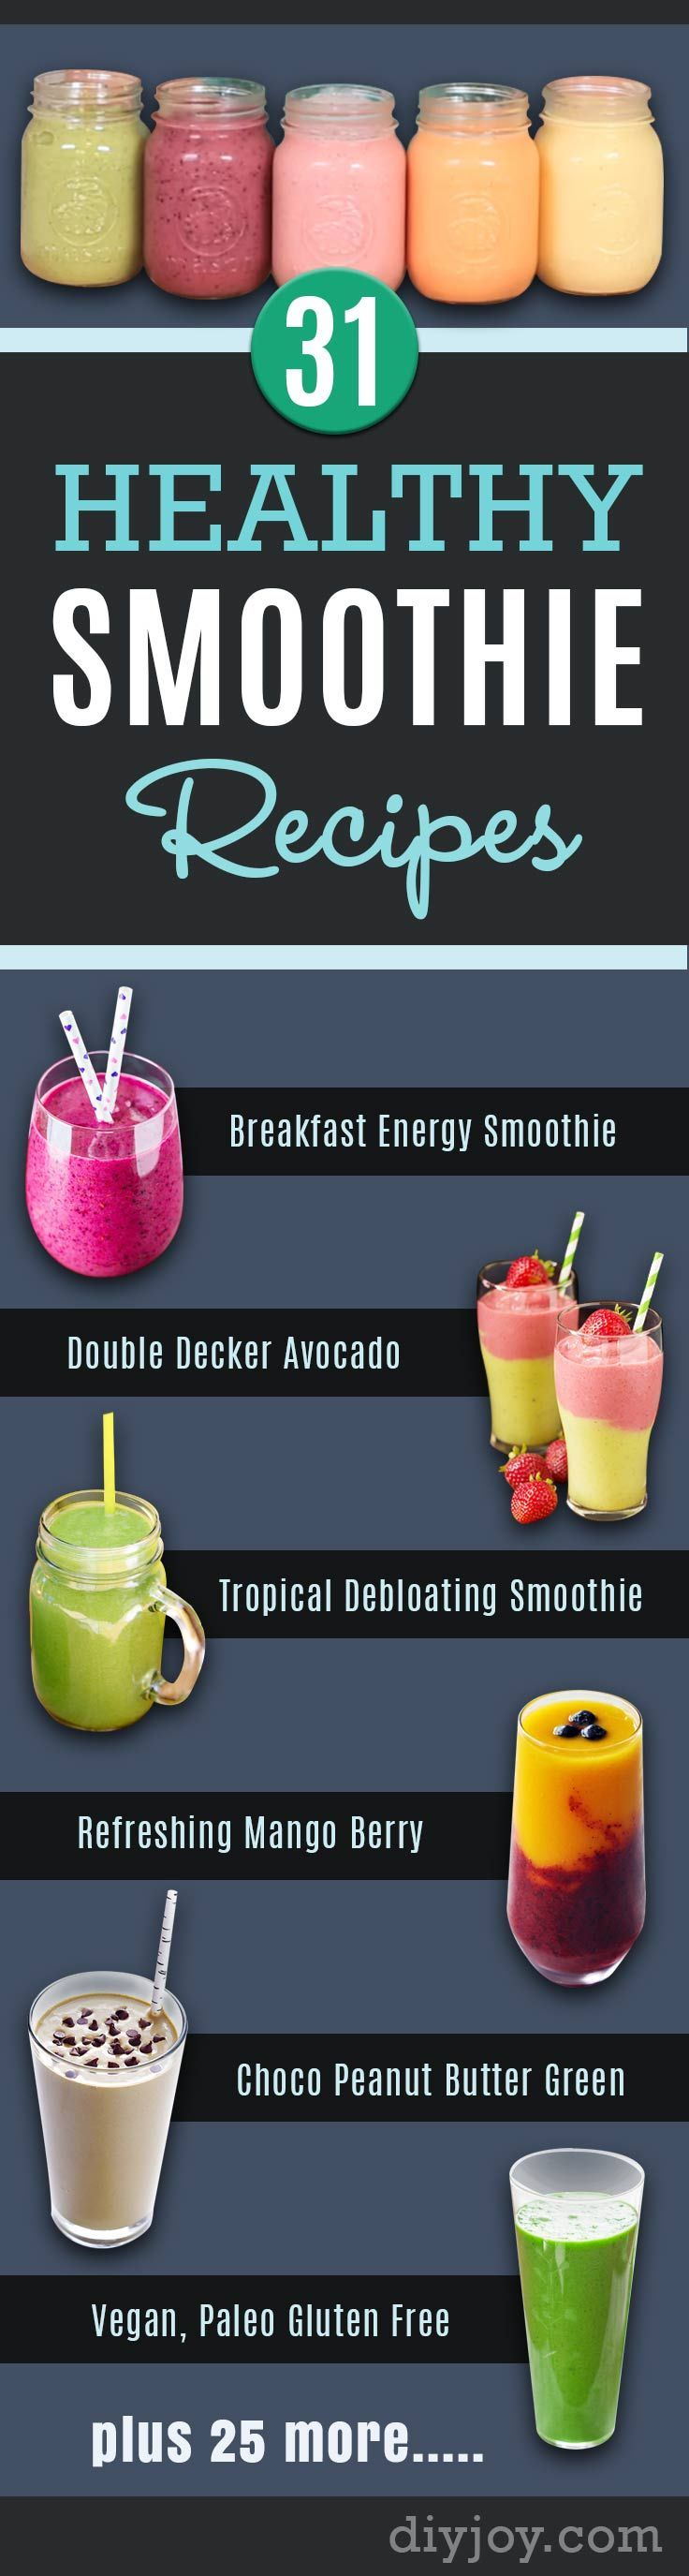 Healthy Smoothie Recipes - Best Smoothies for Breakfast, Lunch, Dinner and Snack. LowFat and Hi Protein Mixes #smoothie